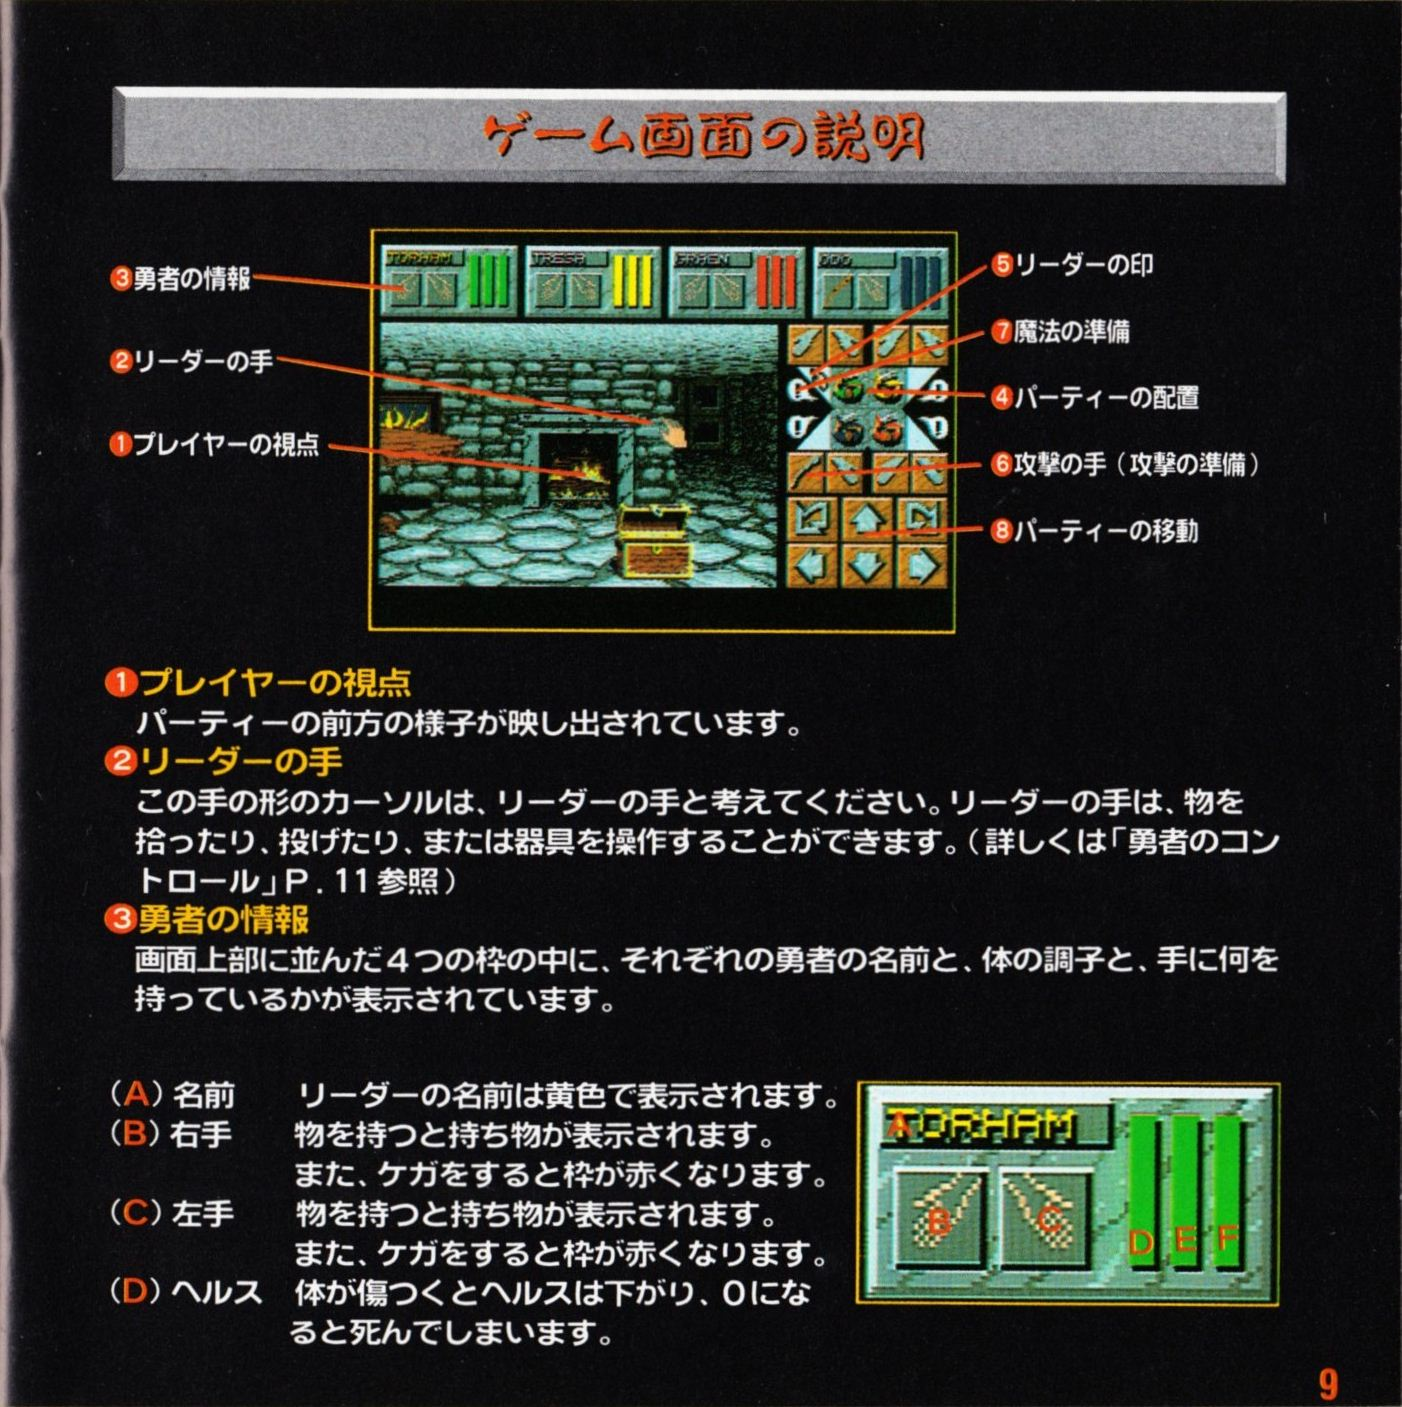 Game - Dungeon Master II - JP - Mega CD - Booklet - Page 011 - Scan